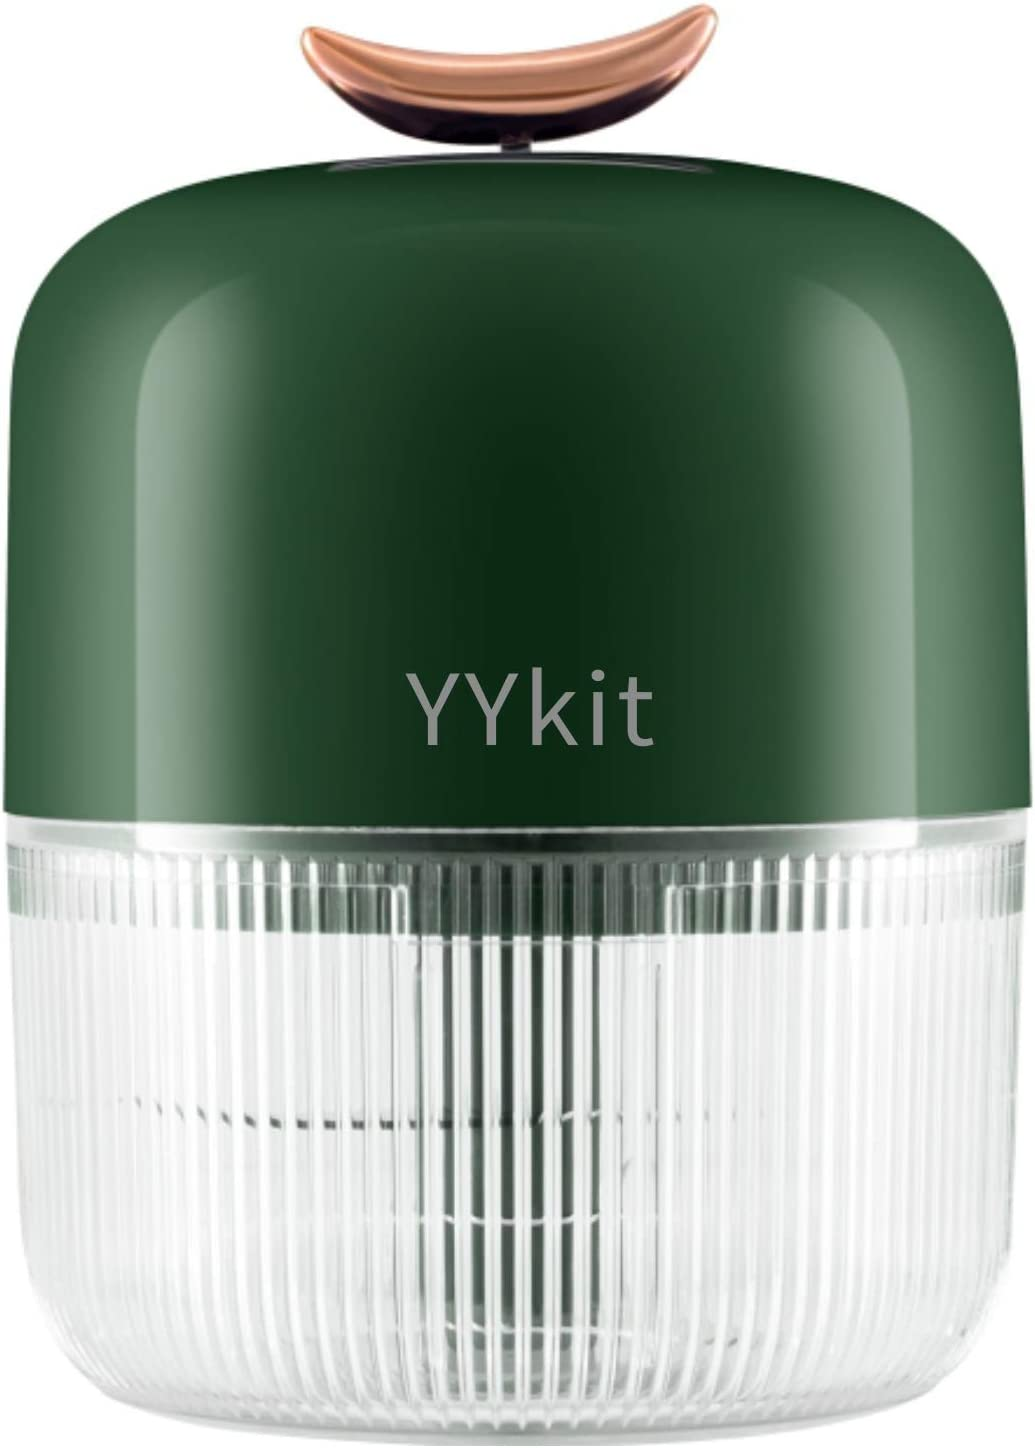 YYkit Discount is also underway New color Mini Food Processor Chopper for Garlic Onion Me